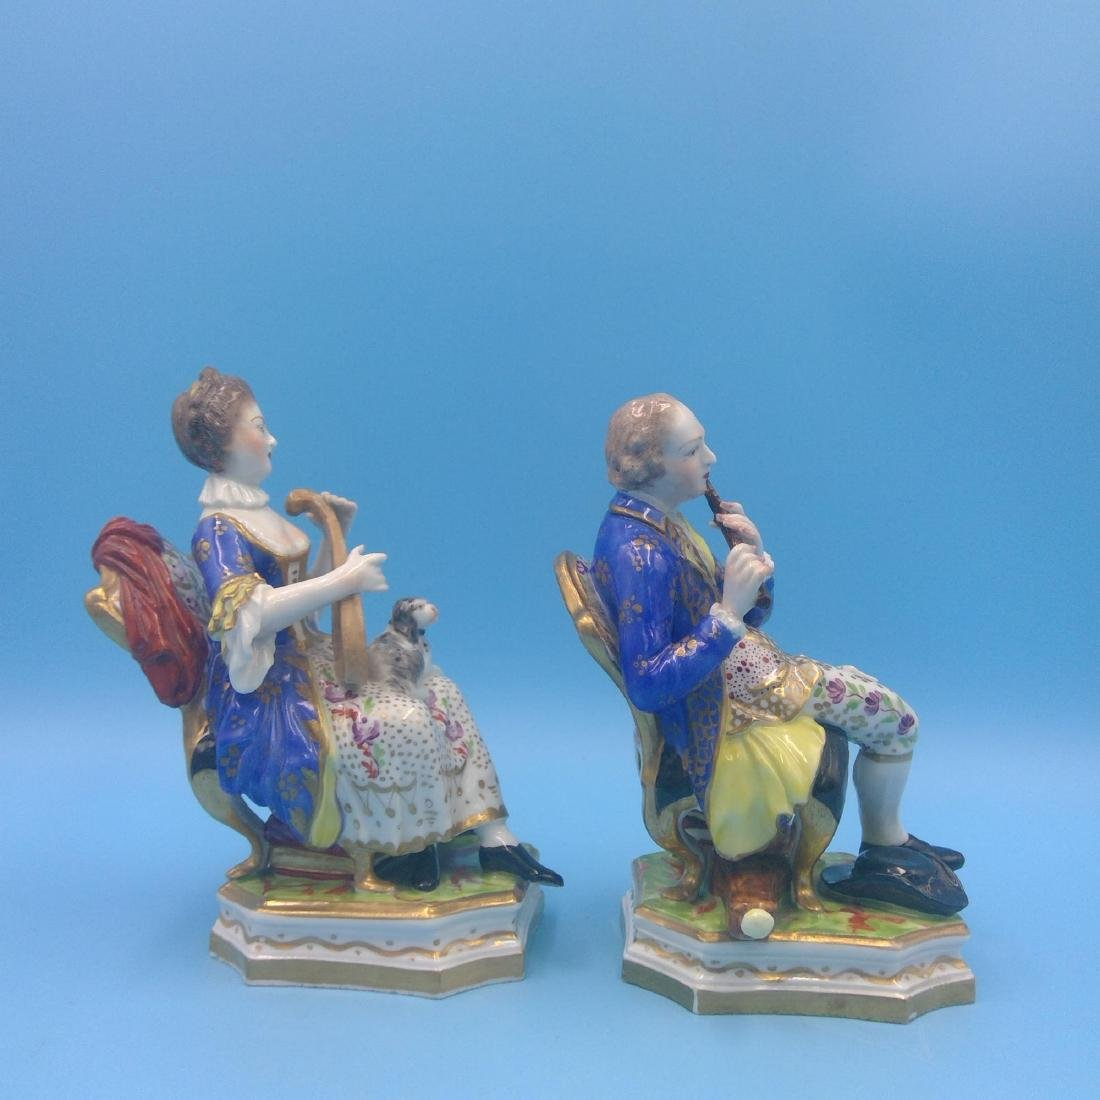 PAIR OF DERBY 18thC ENGLISH PORCELAIN FIGURINES - 4